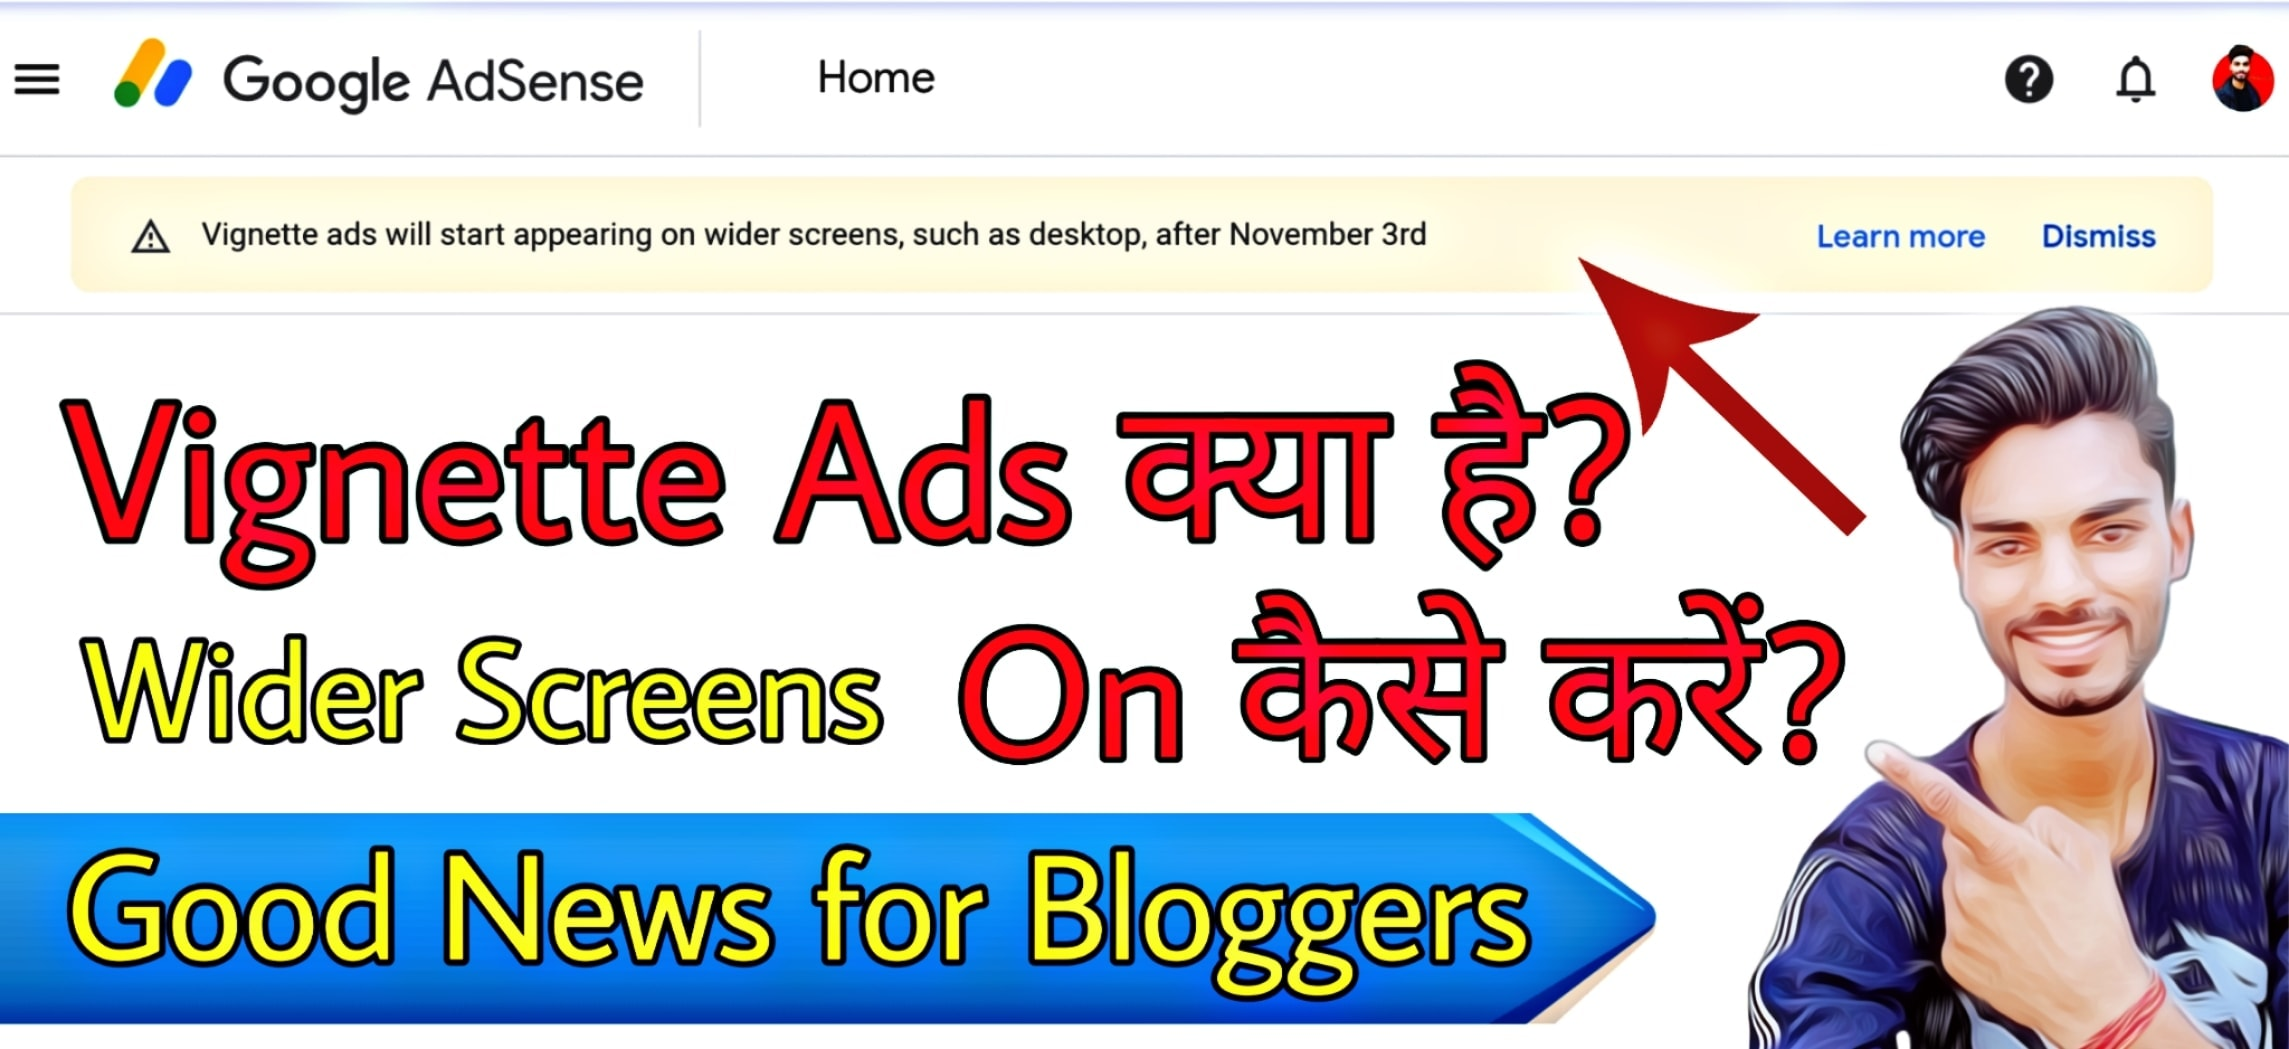 Google AdSense Vignette ads to Show on Wider Screens from 3 November 2020